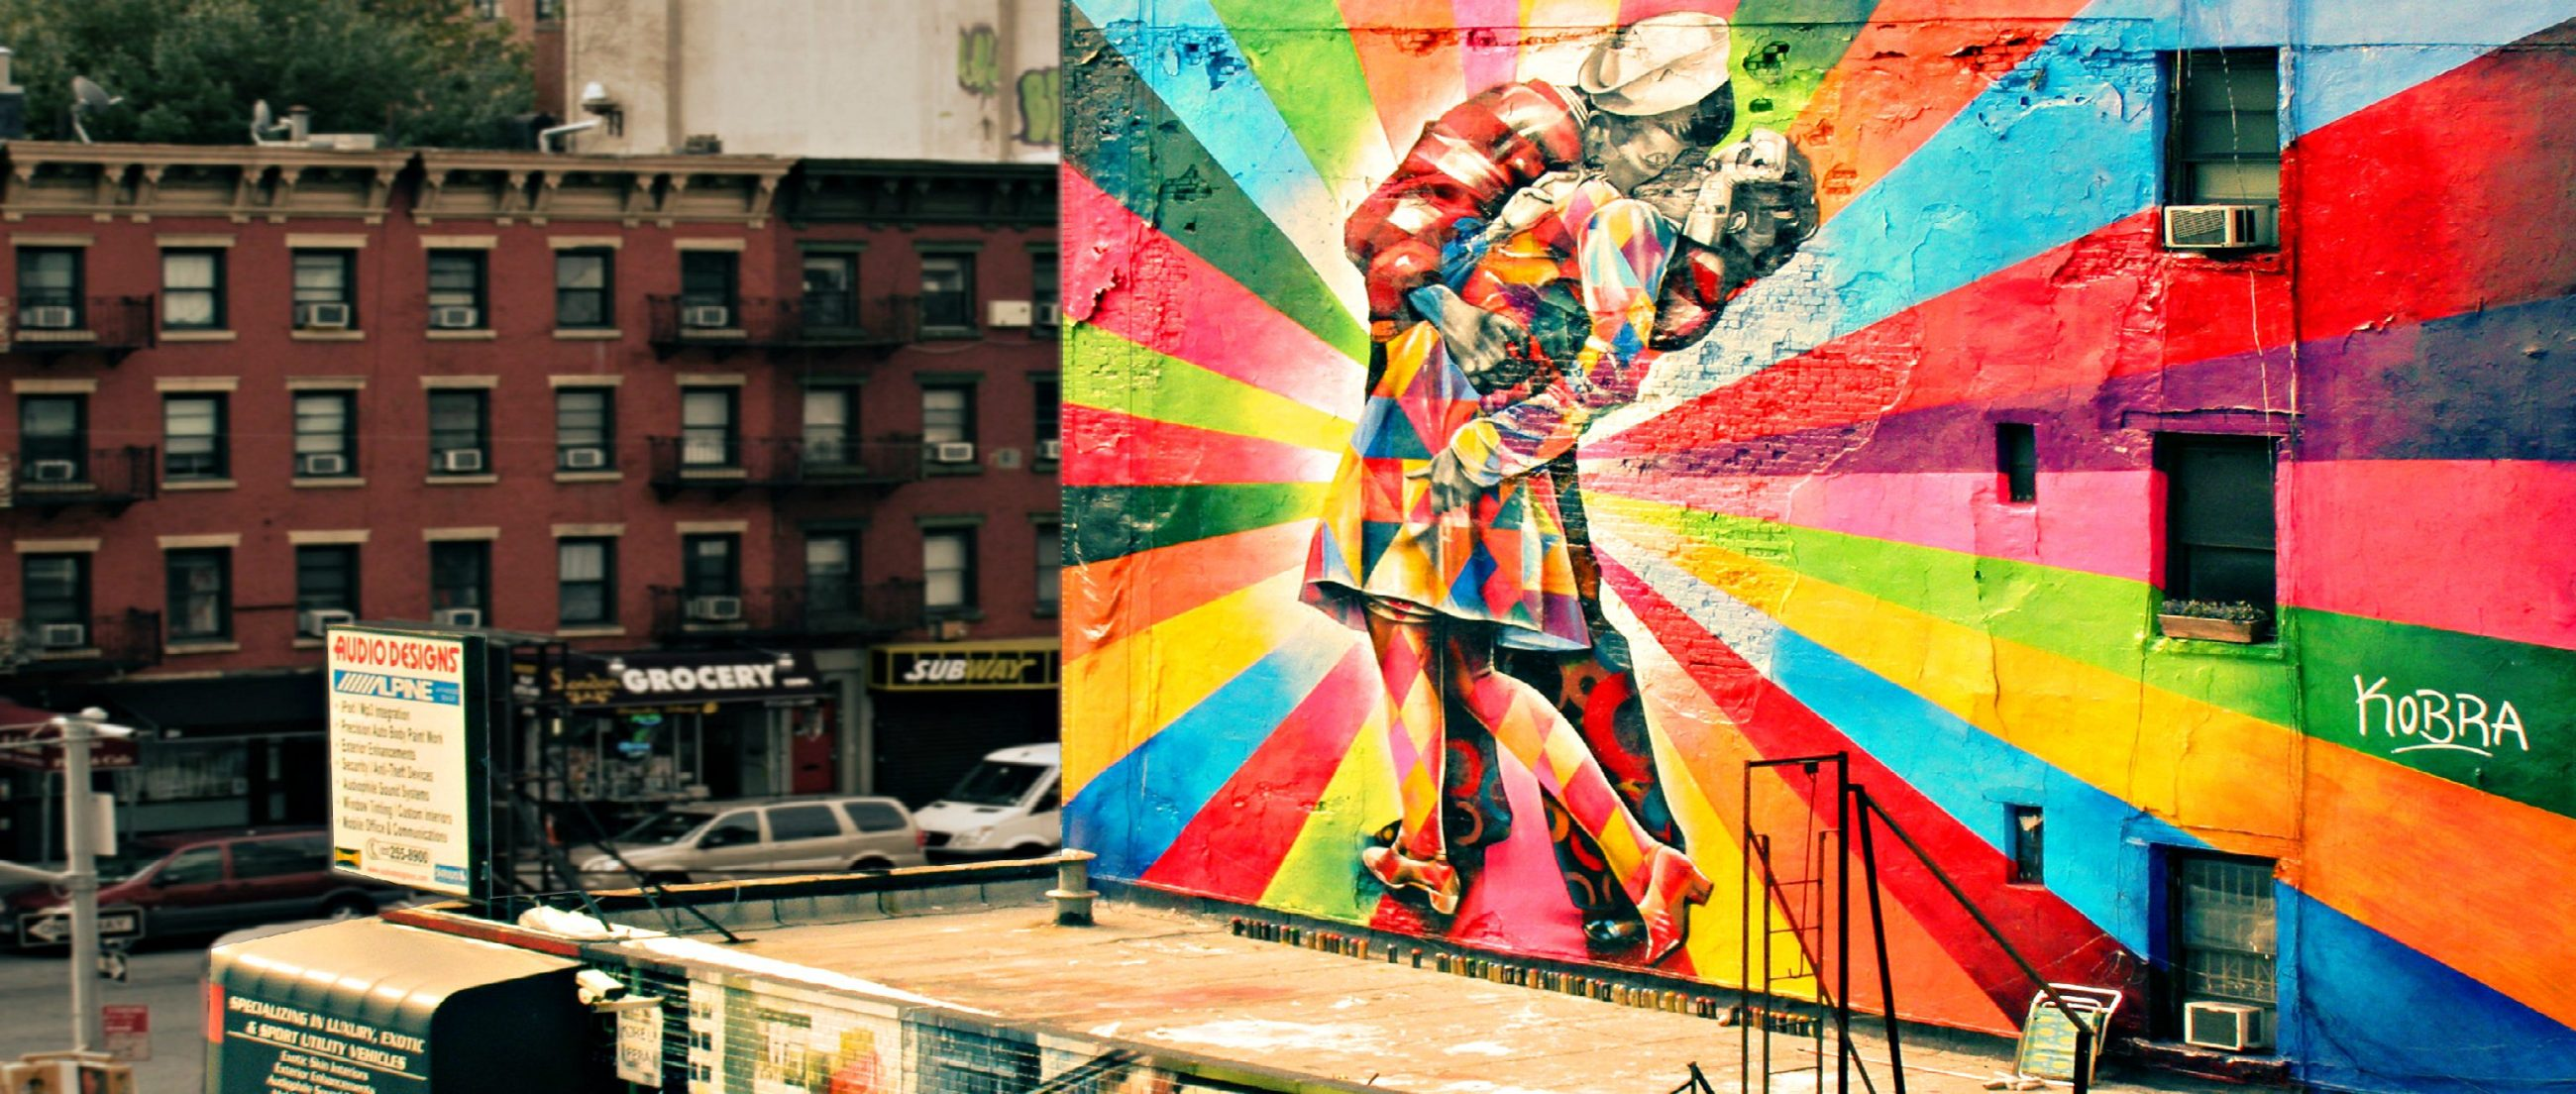 7 Best Cities For Street Art Around The World